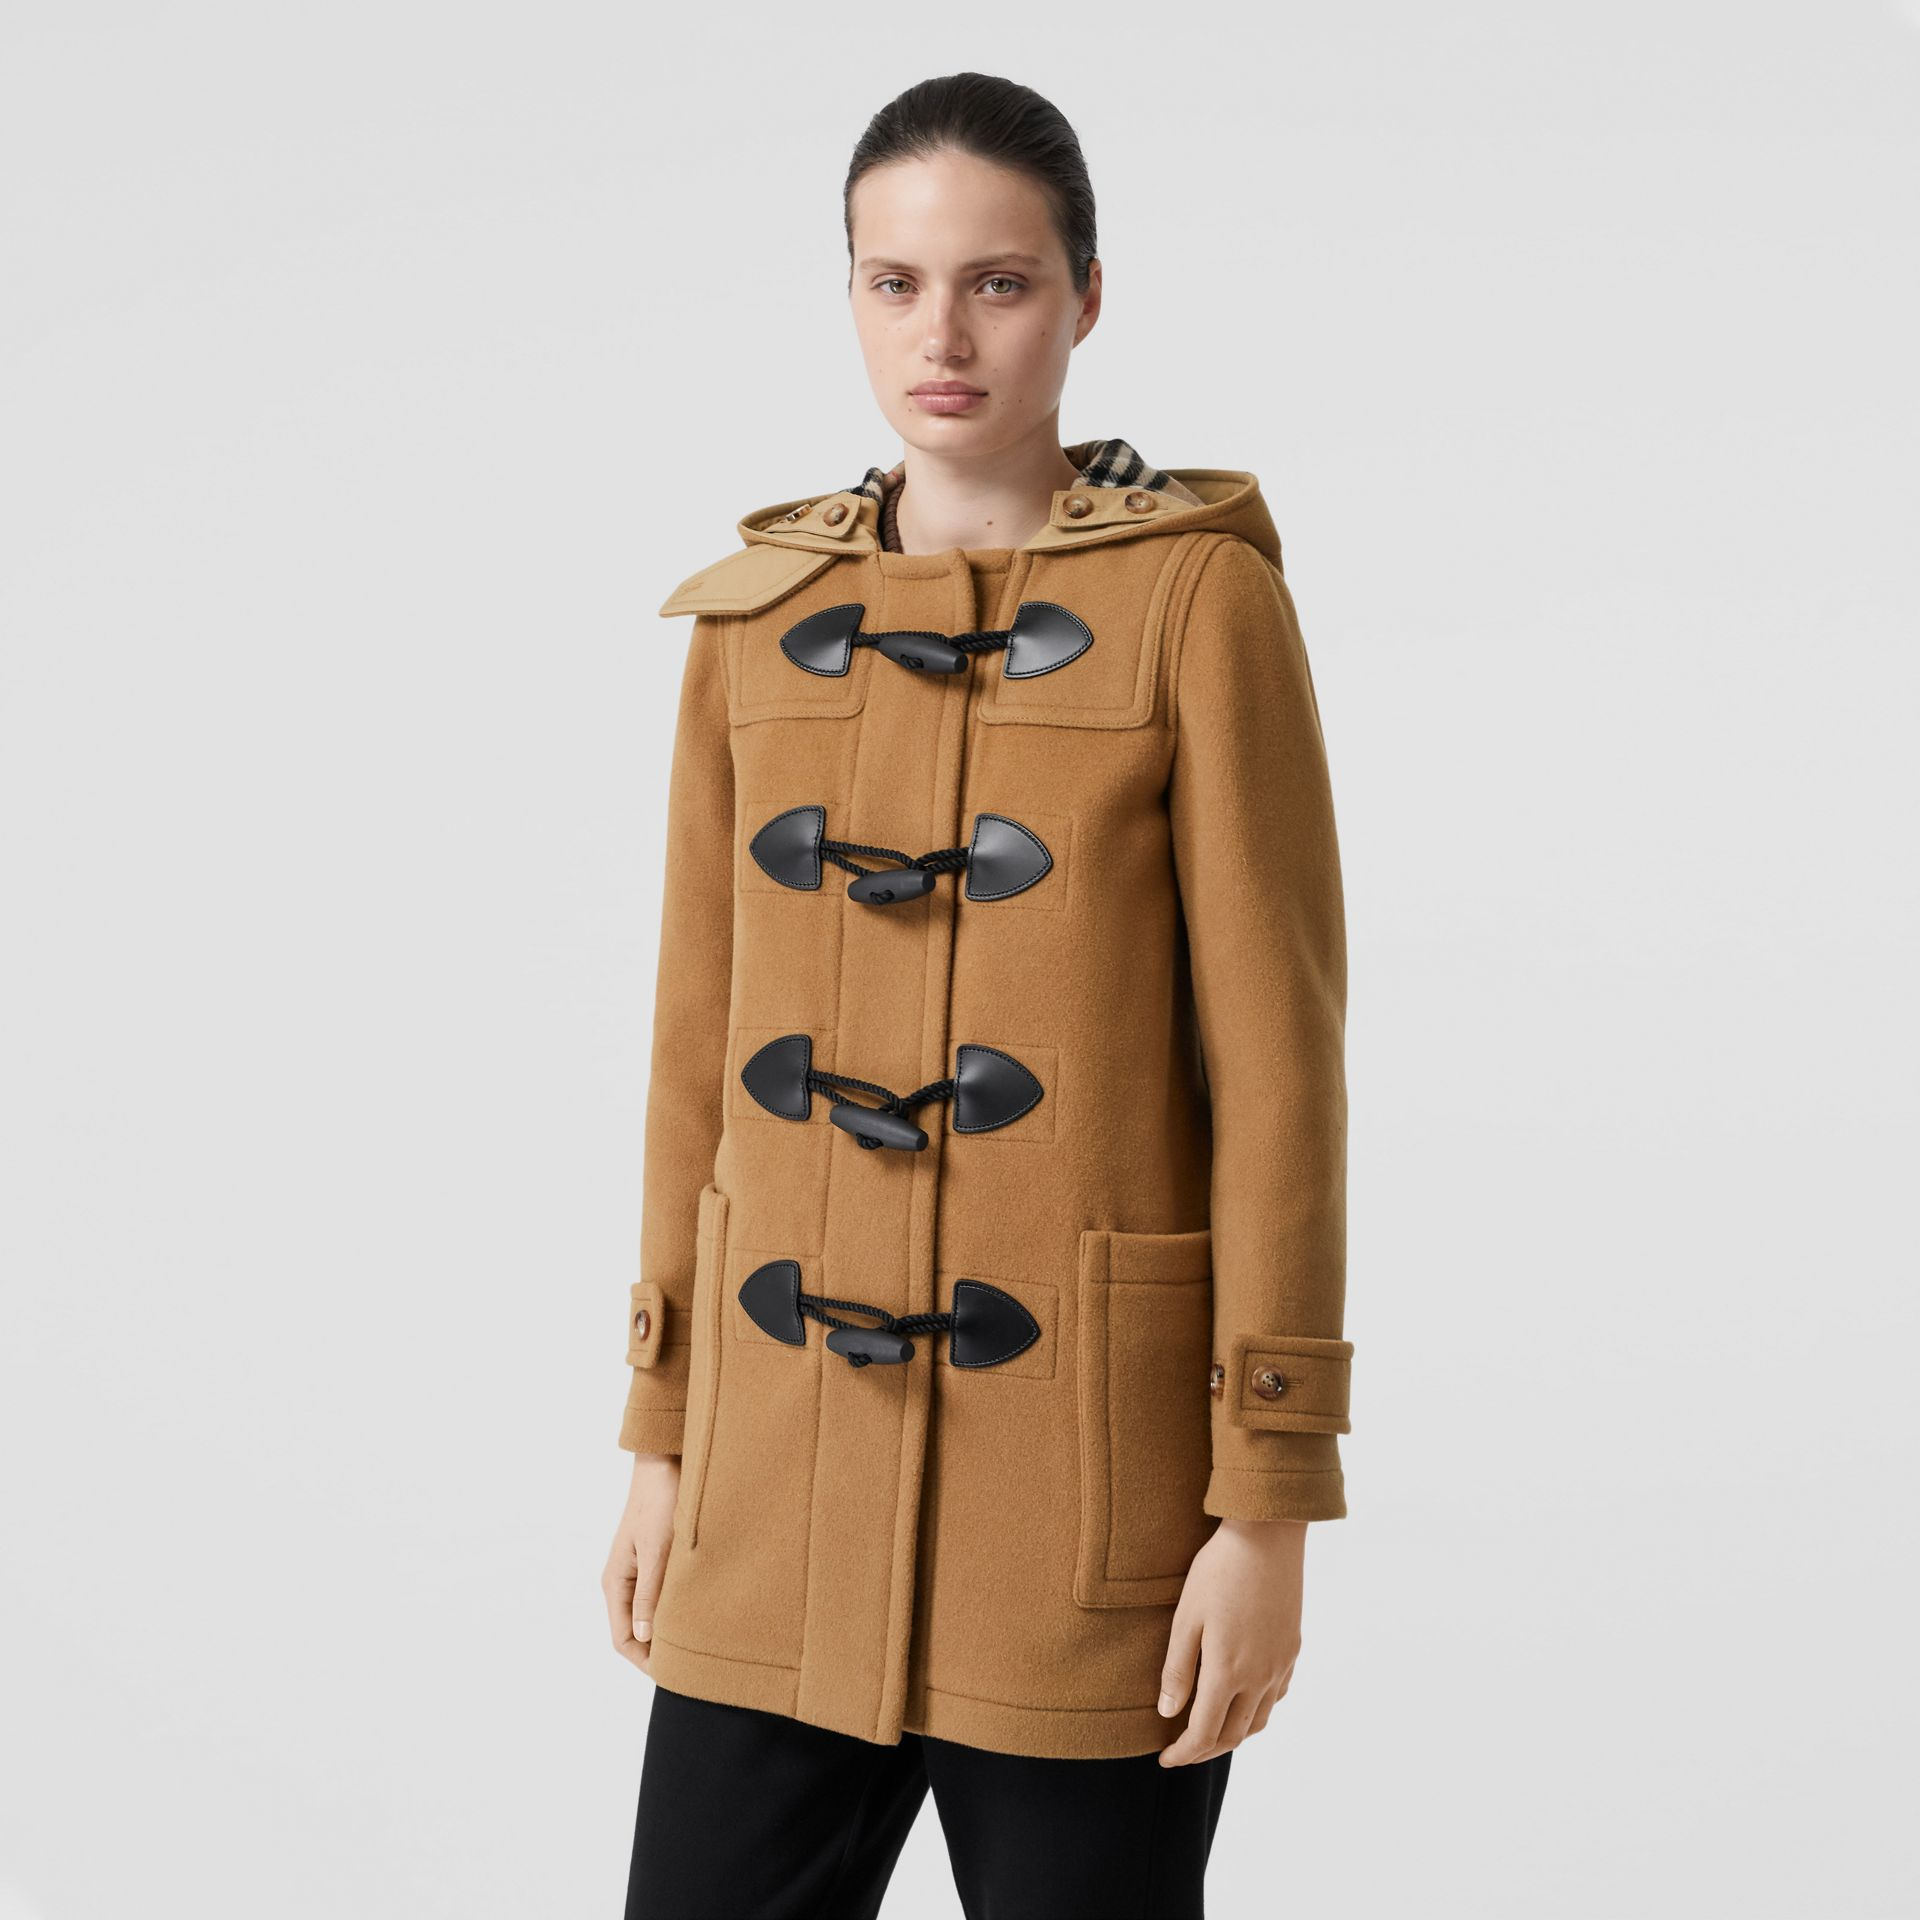 Wool Blend Duffle Coat in Mid Camel - Women | Burberry Australia - gallery image 5